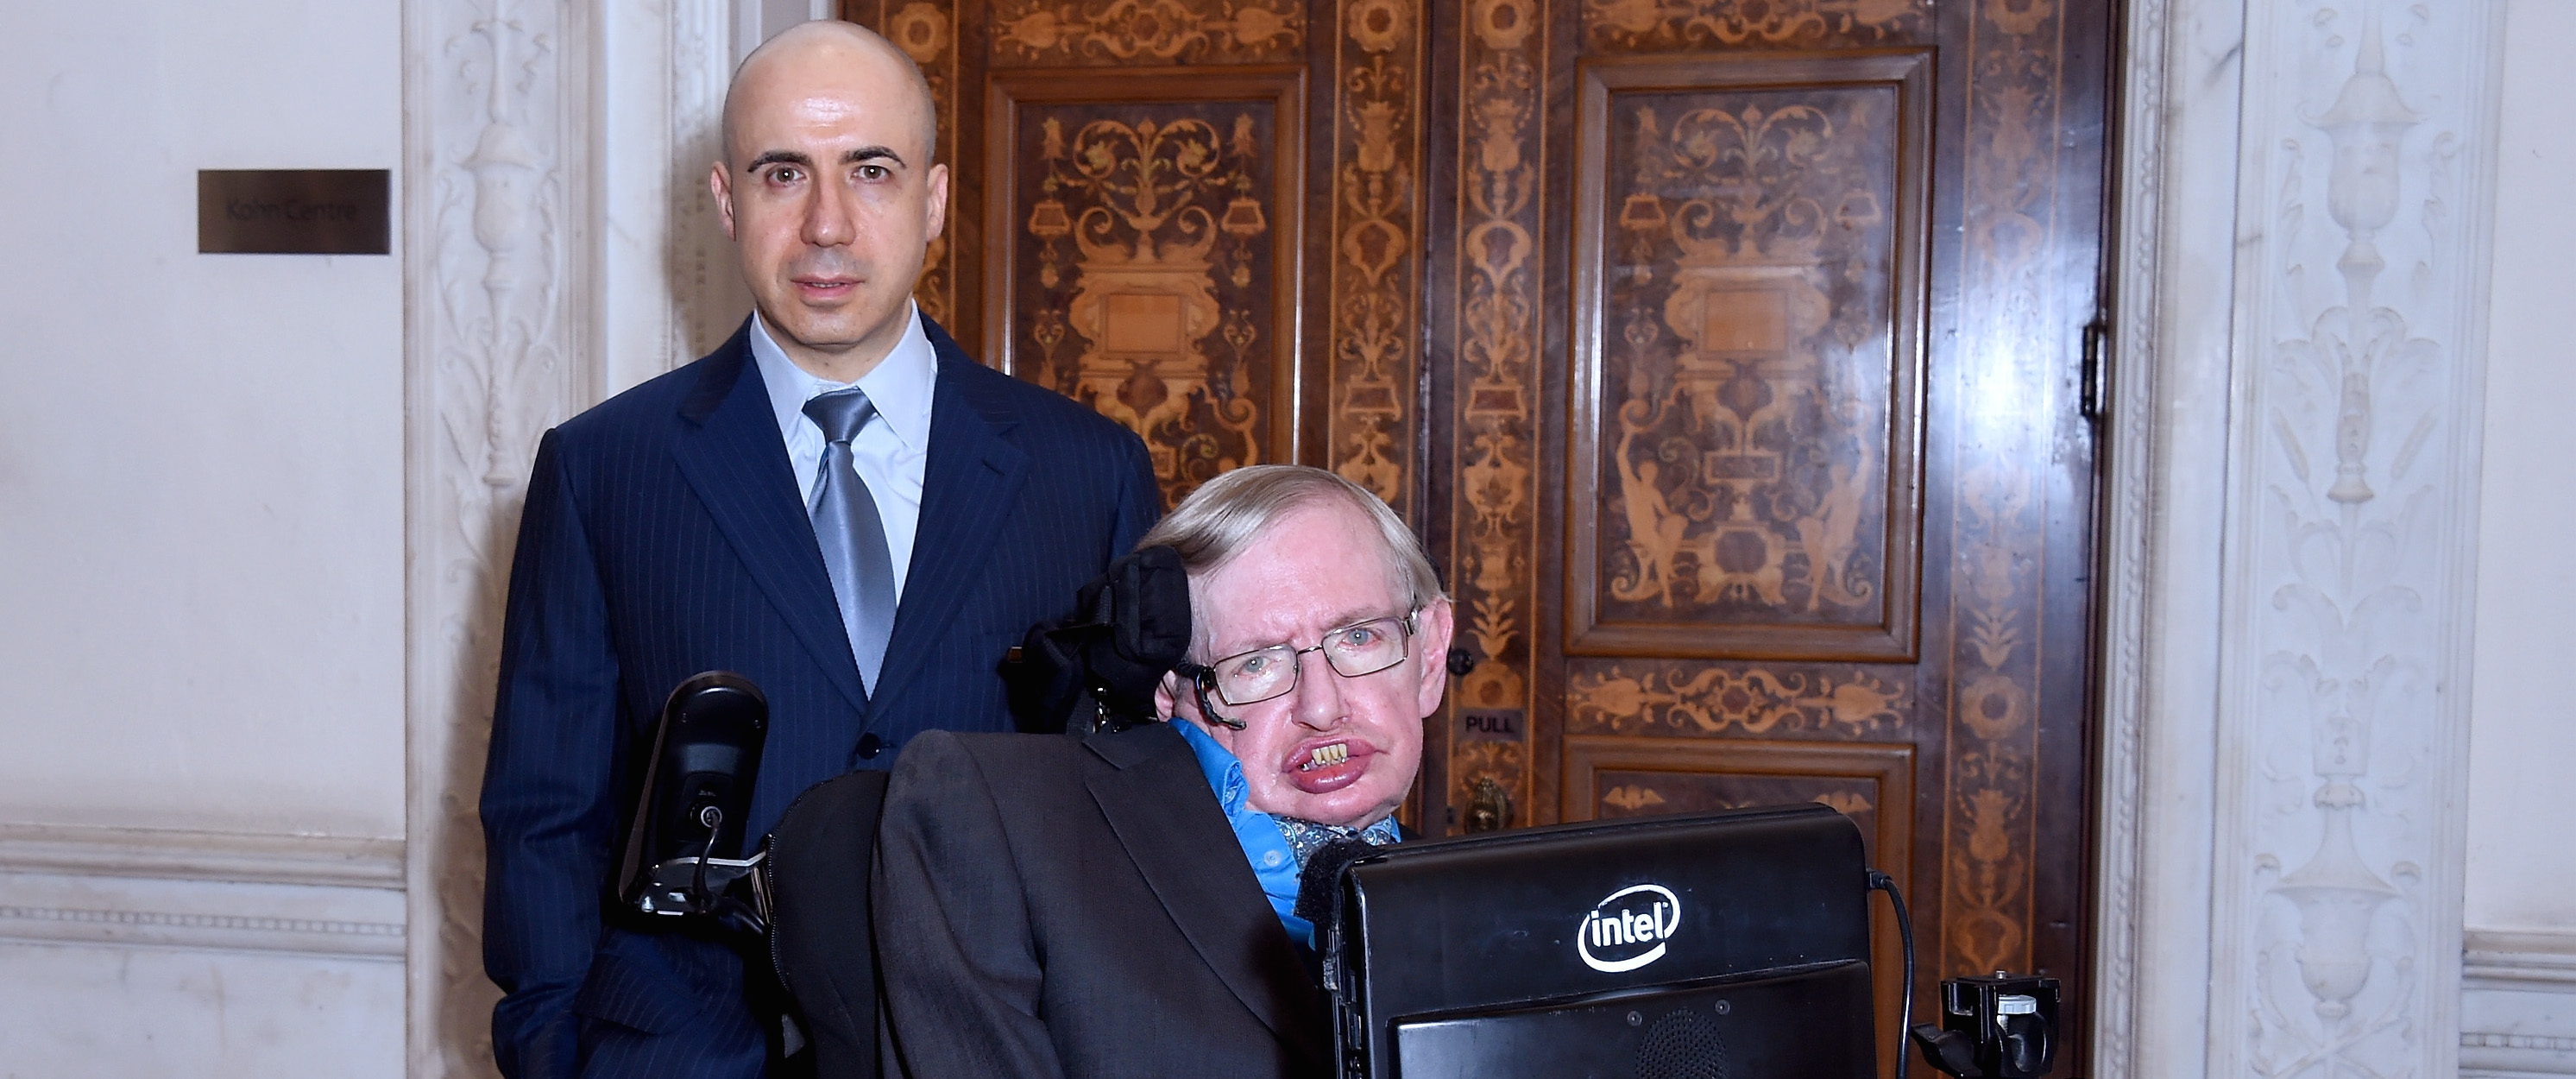 We're finally listening for alien messages properly thanks to Stephen Hawking, Yuri Milner and $100 million